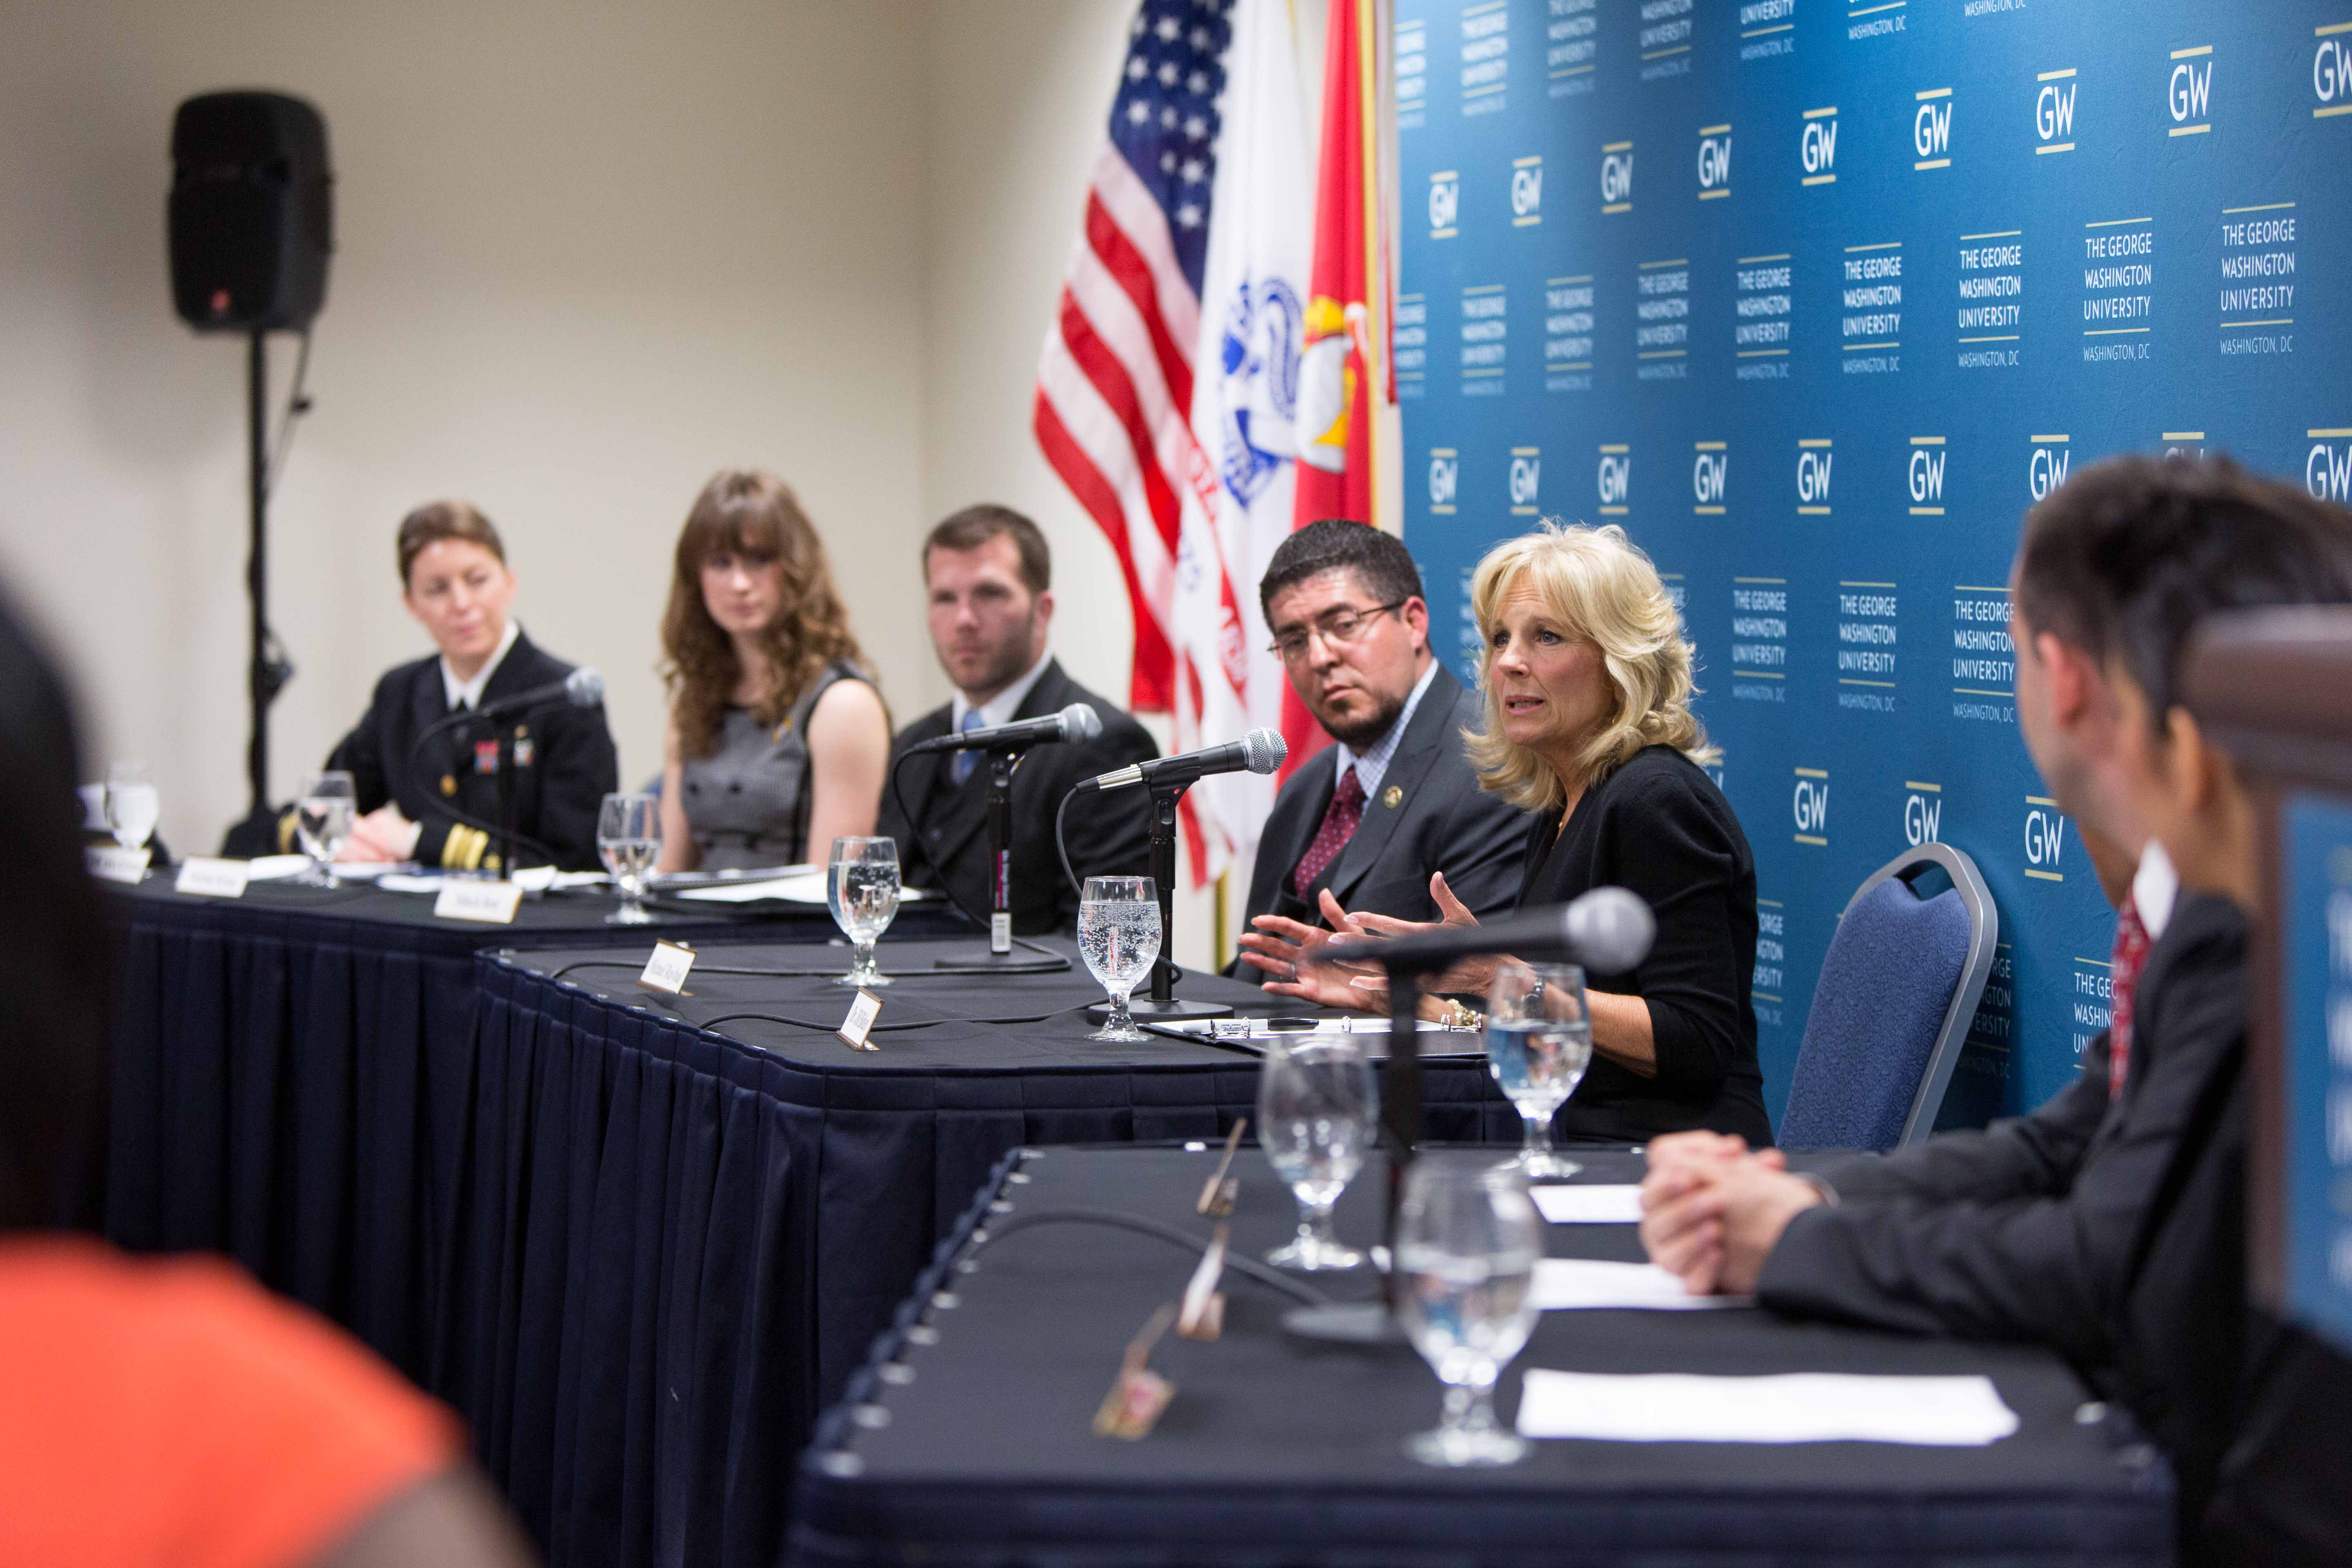 Dr. Biden participates on a panel with student, faculty and staff veterans at George Washington University